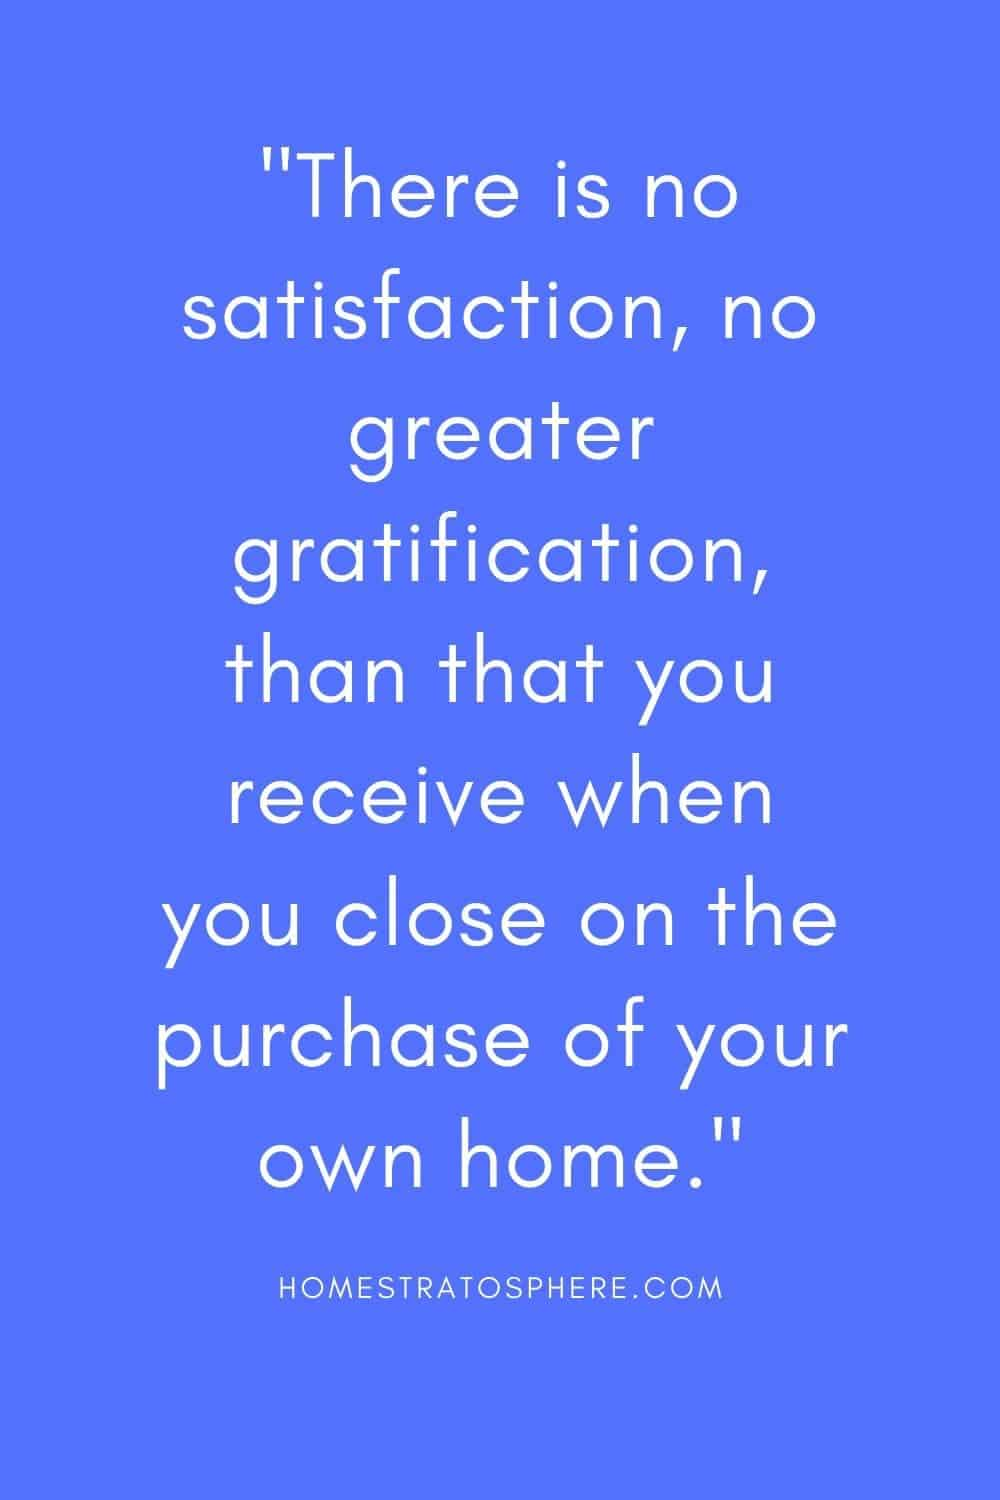 """There is no satisfaction, no greater gratification, than that you receive when you close on the purchase of your own home."""